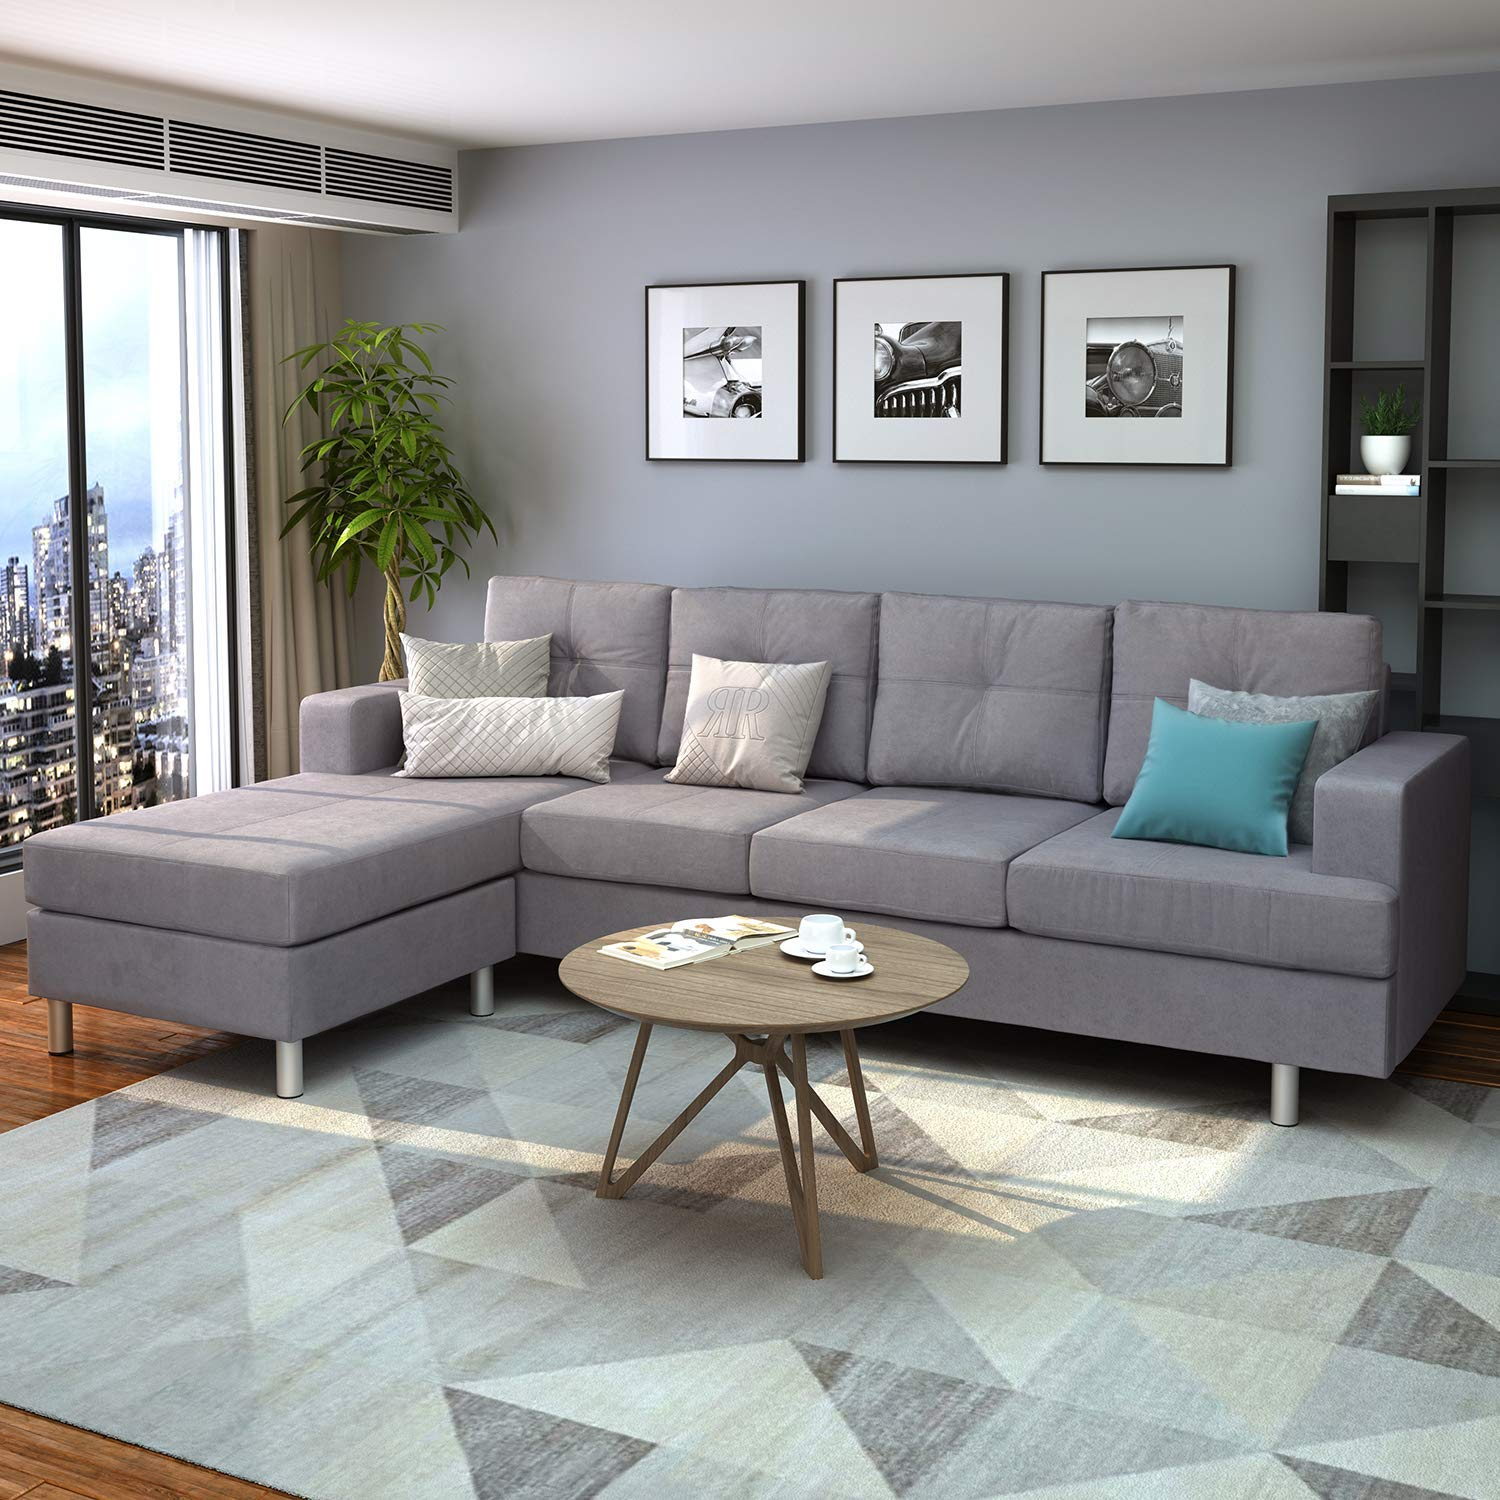 Harper & Bright Designs Modern Sectional Sofa Set with Chaise Lounge for Living Room L Shape Home Furniture 4 Seat(Grey), Without Storage Ottoman, Type1 by Harper & Bright Designs